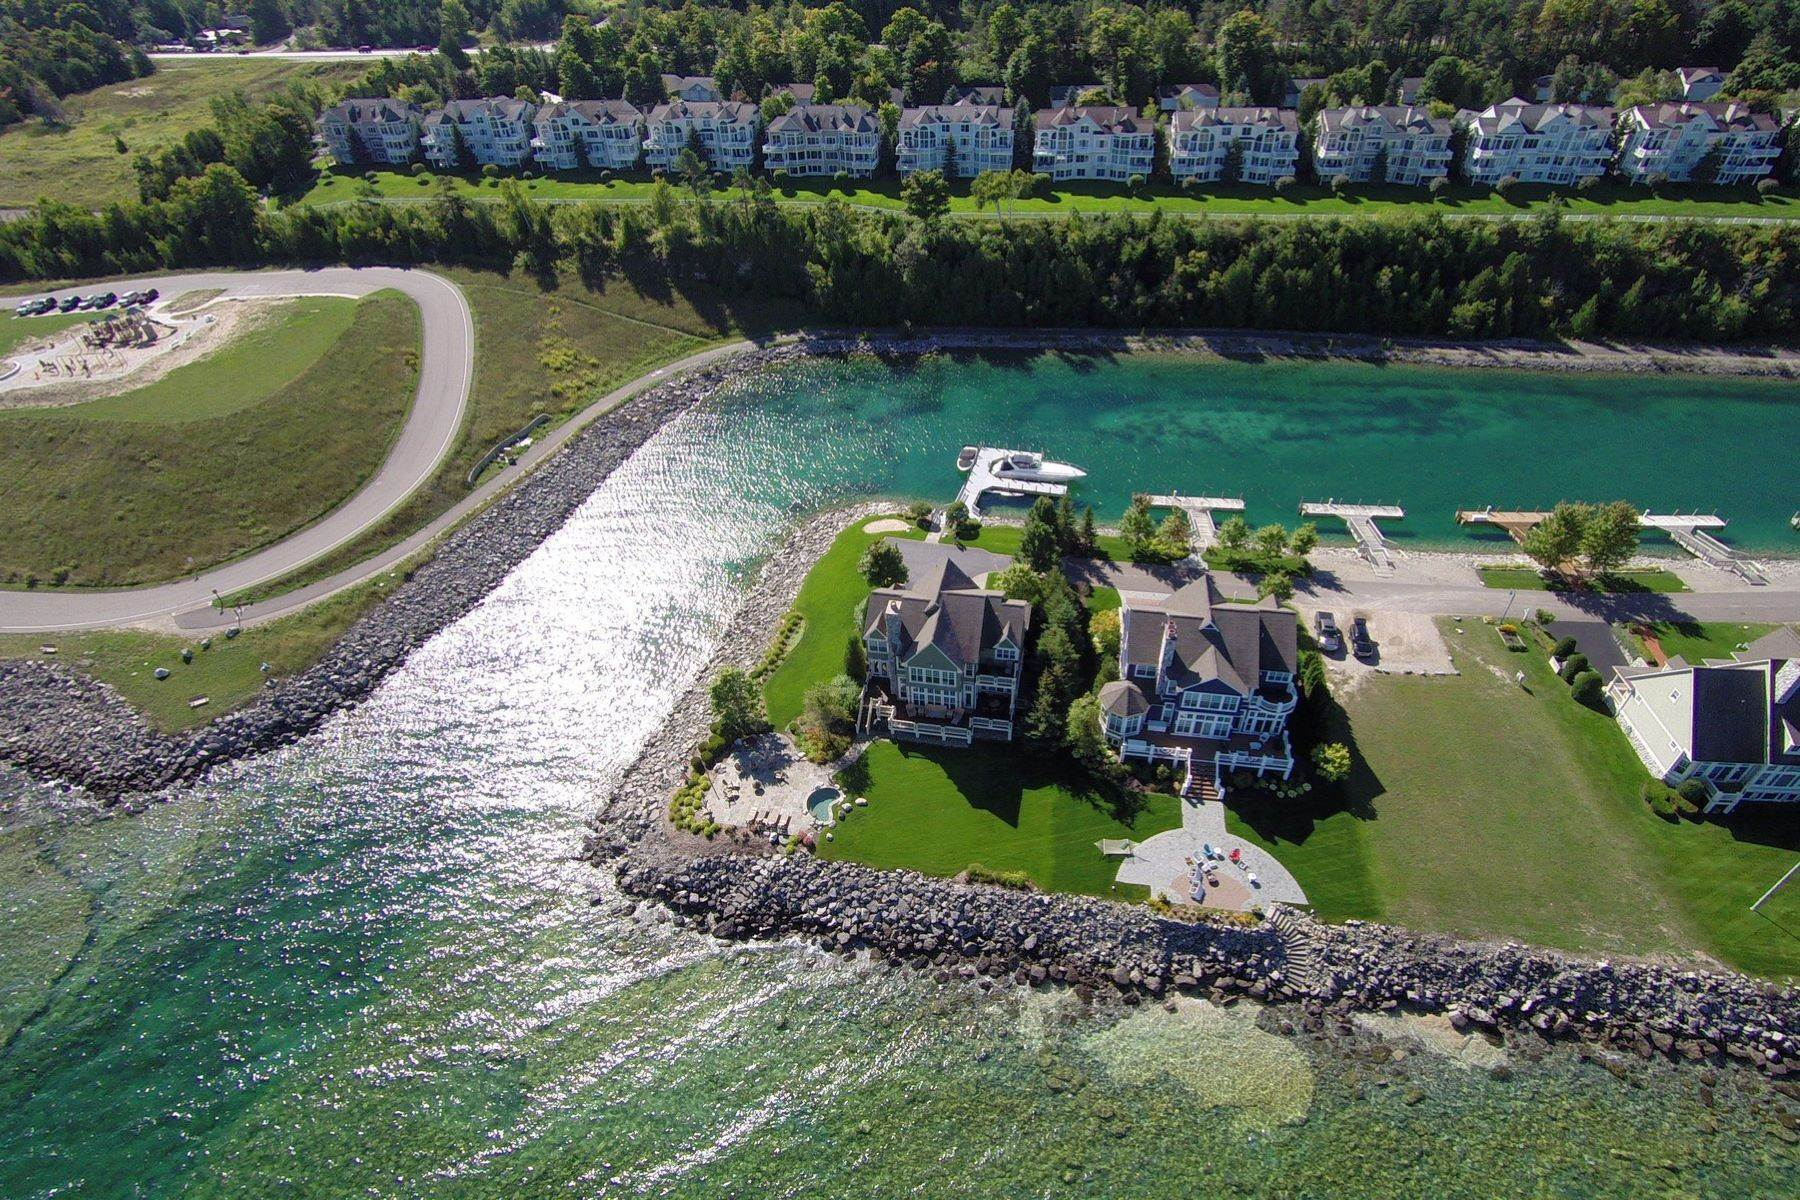 9. Property for Sale at Protected Lake Michigan dock Unit 15 Village Harbor Docks Bay Harbor, Michigan 49770 United States